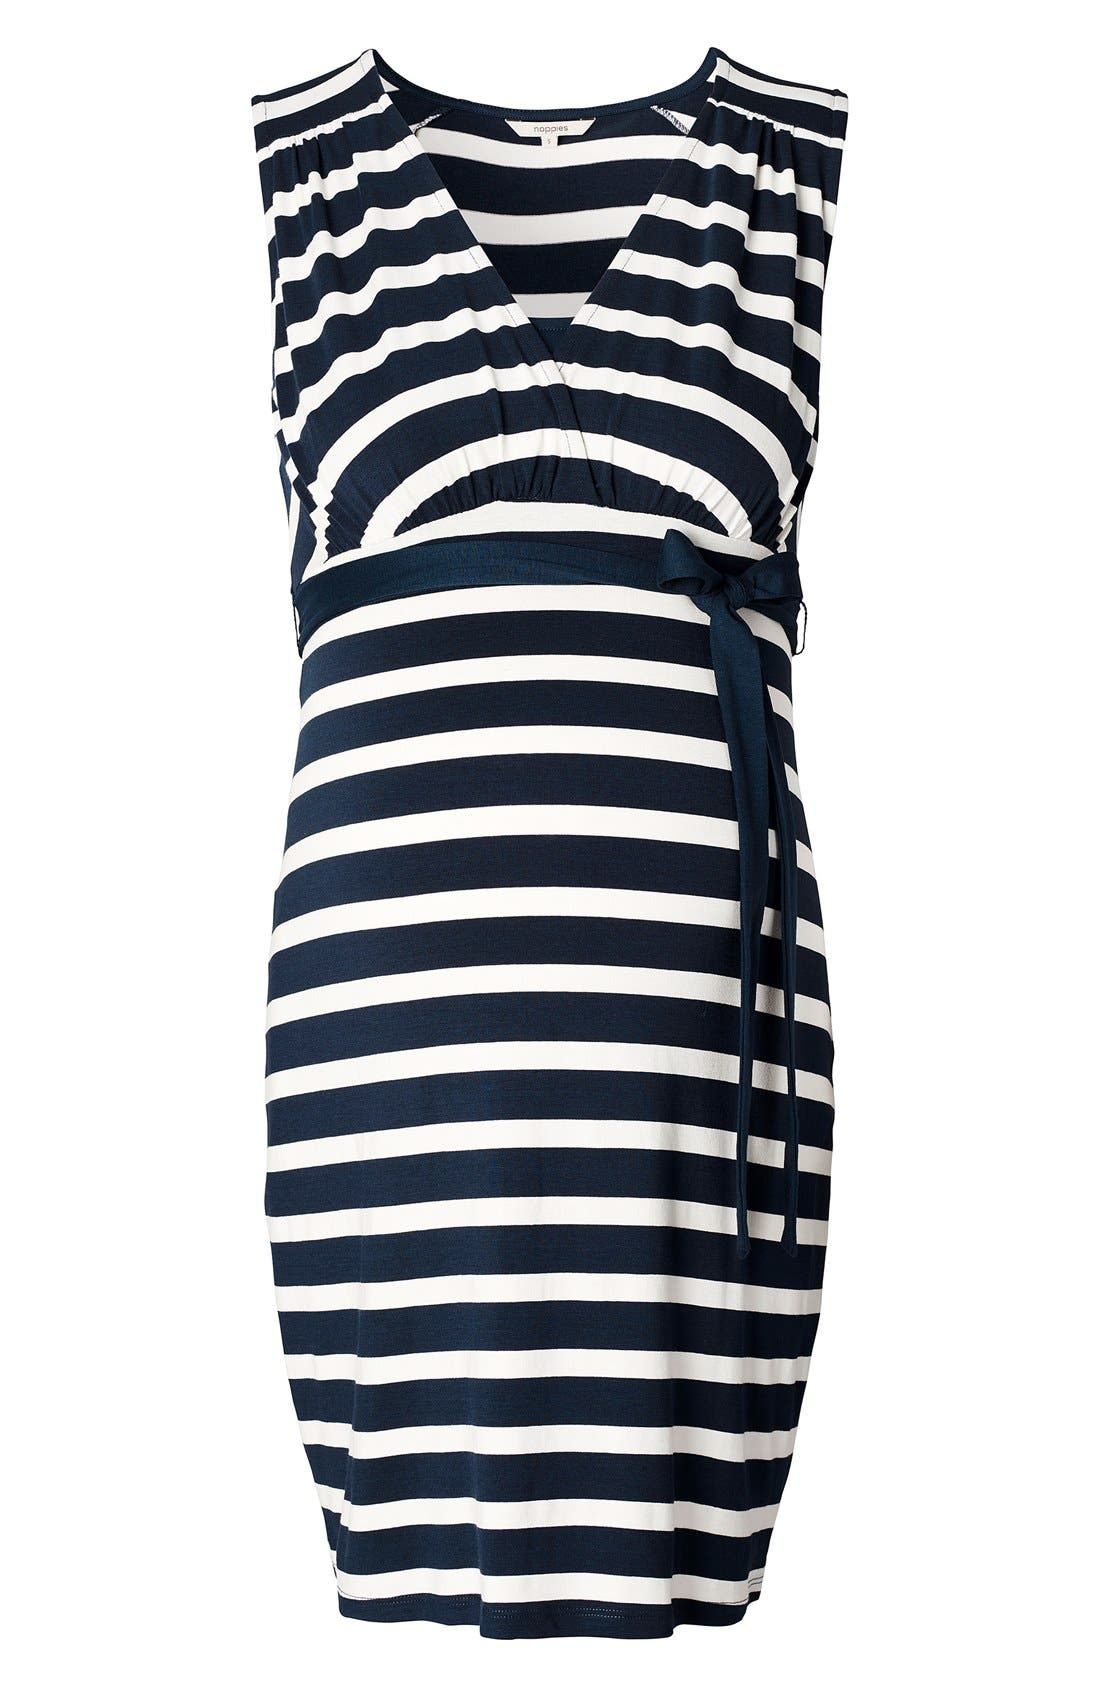 Alternate Image 1 Selected - Noppies 'Lara' Stripe Maternity Dress